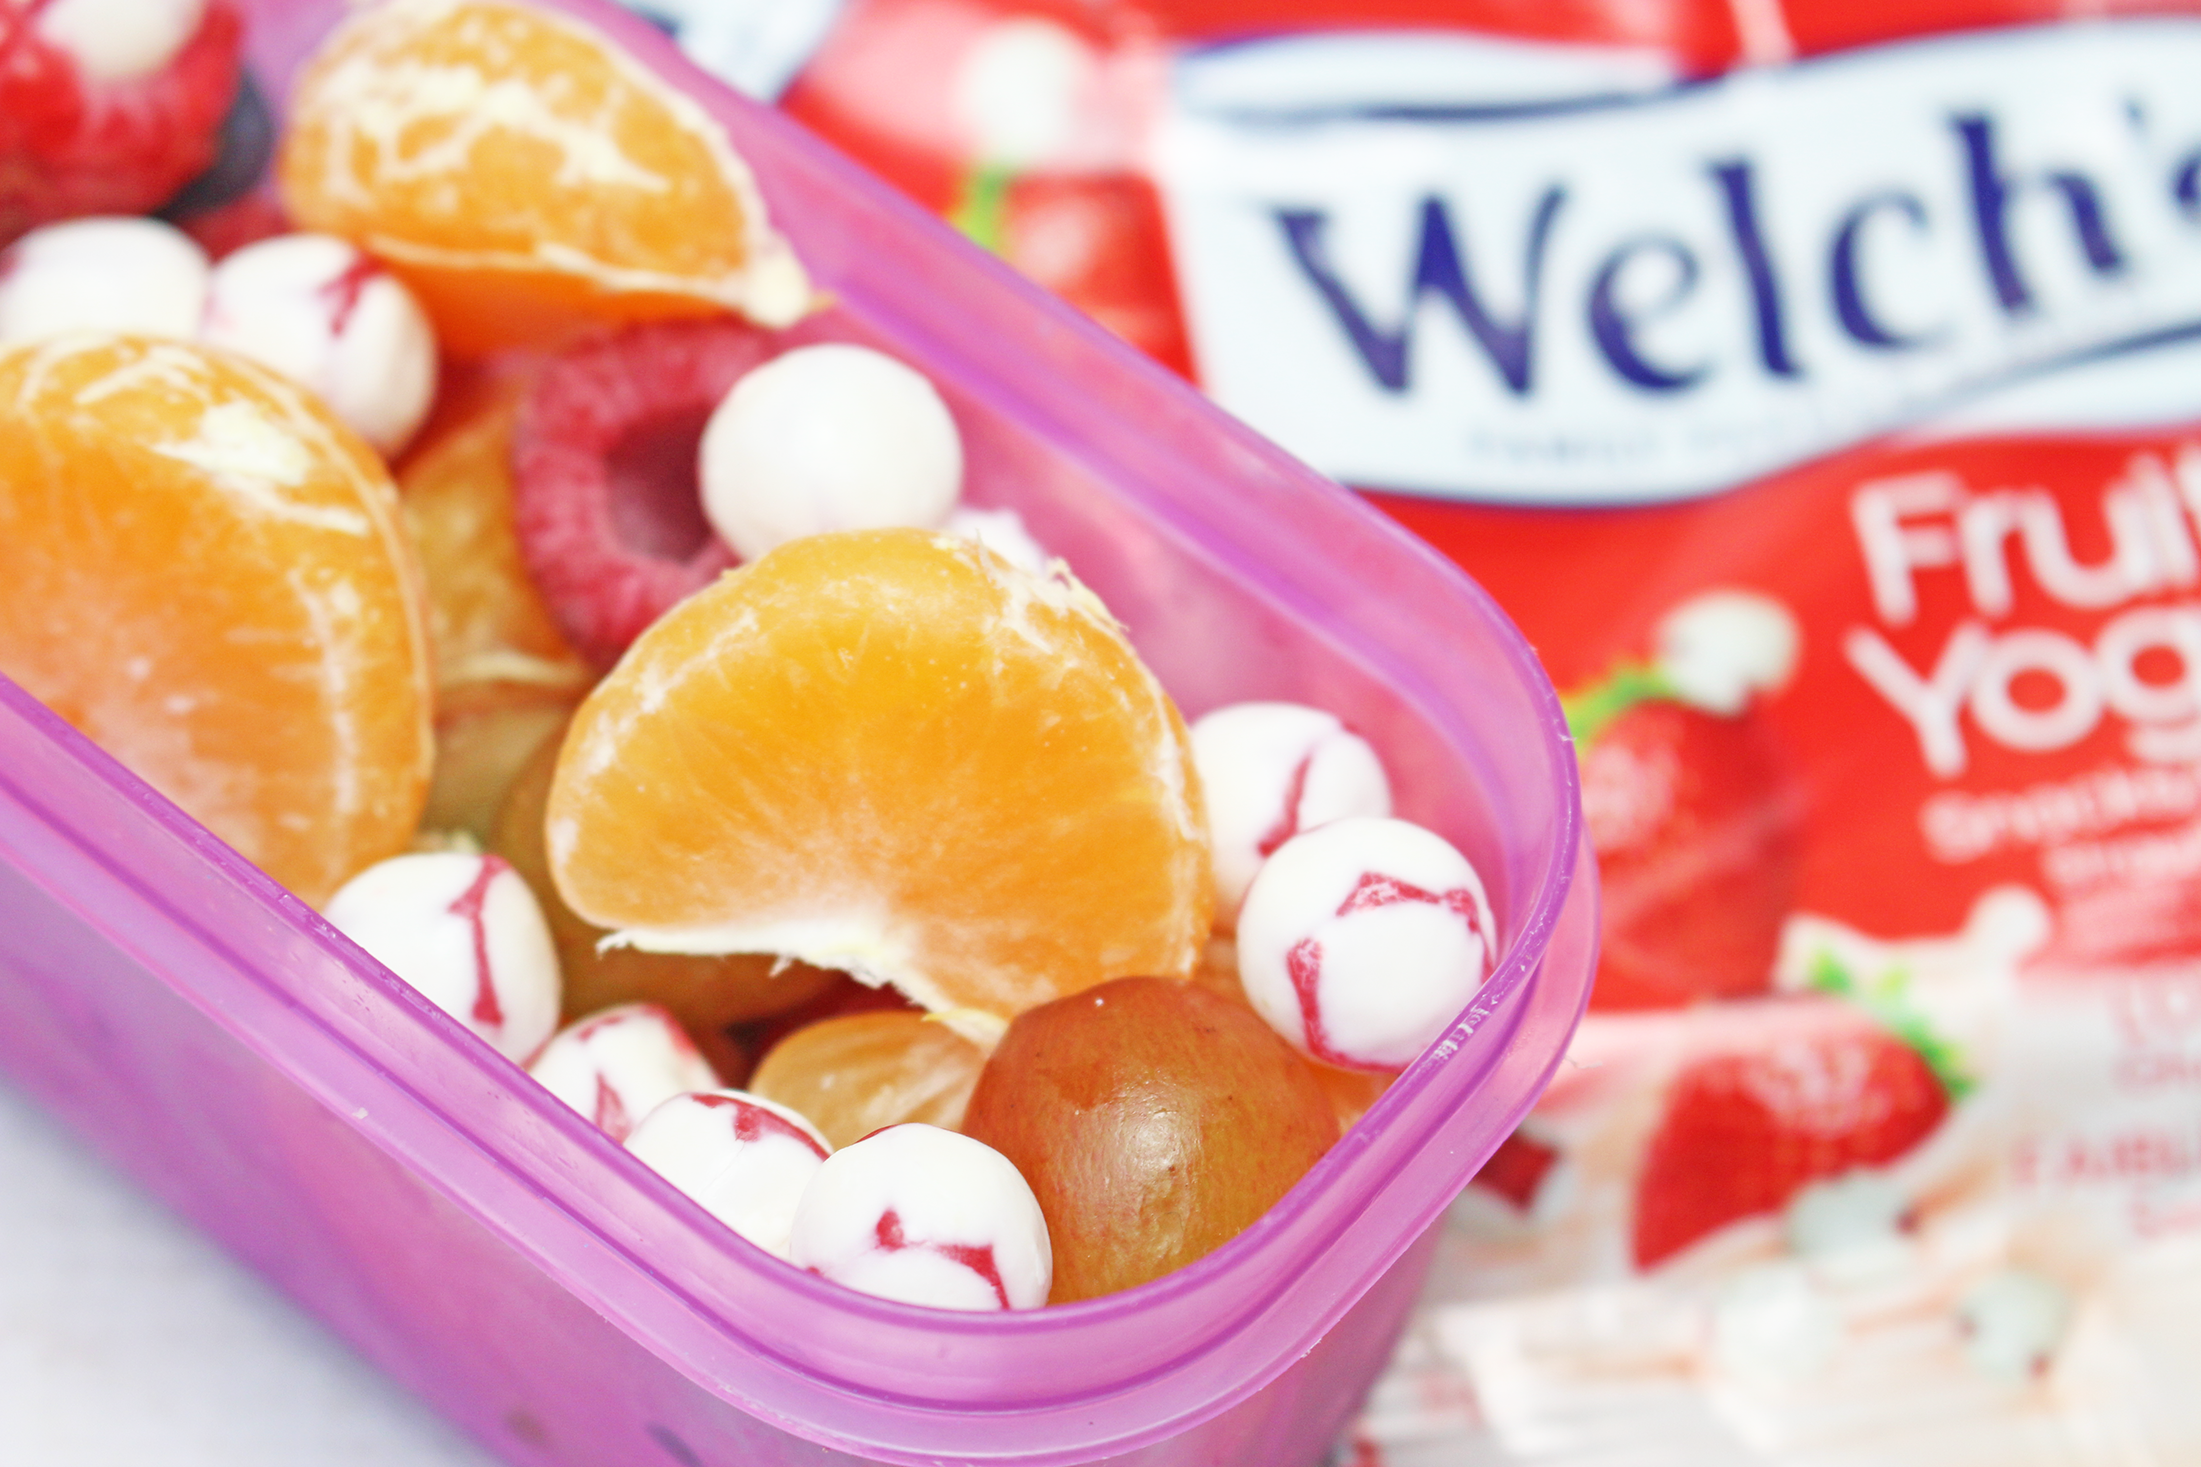 Head Back to School with Welch's Fruit 'n Yogurt and Three Creative Snack Ideas + Coupon Code